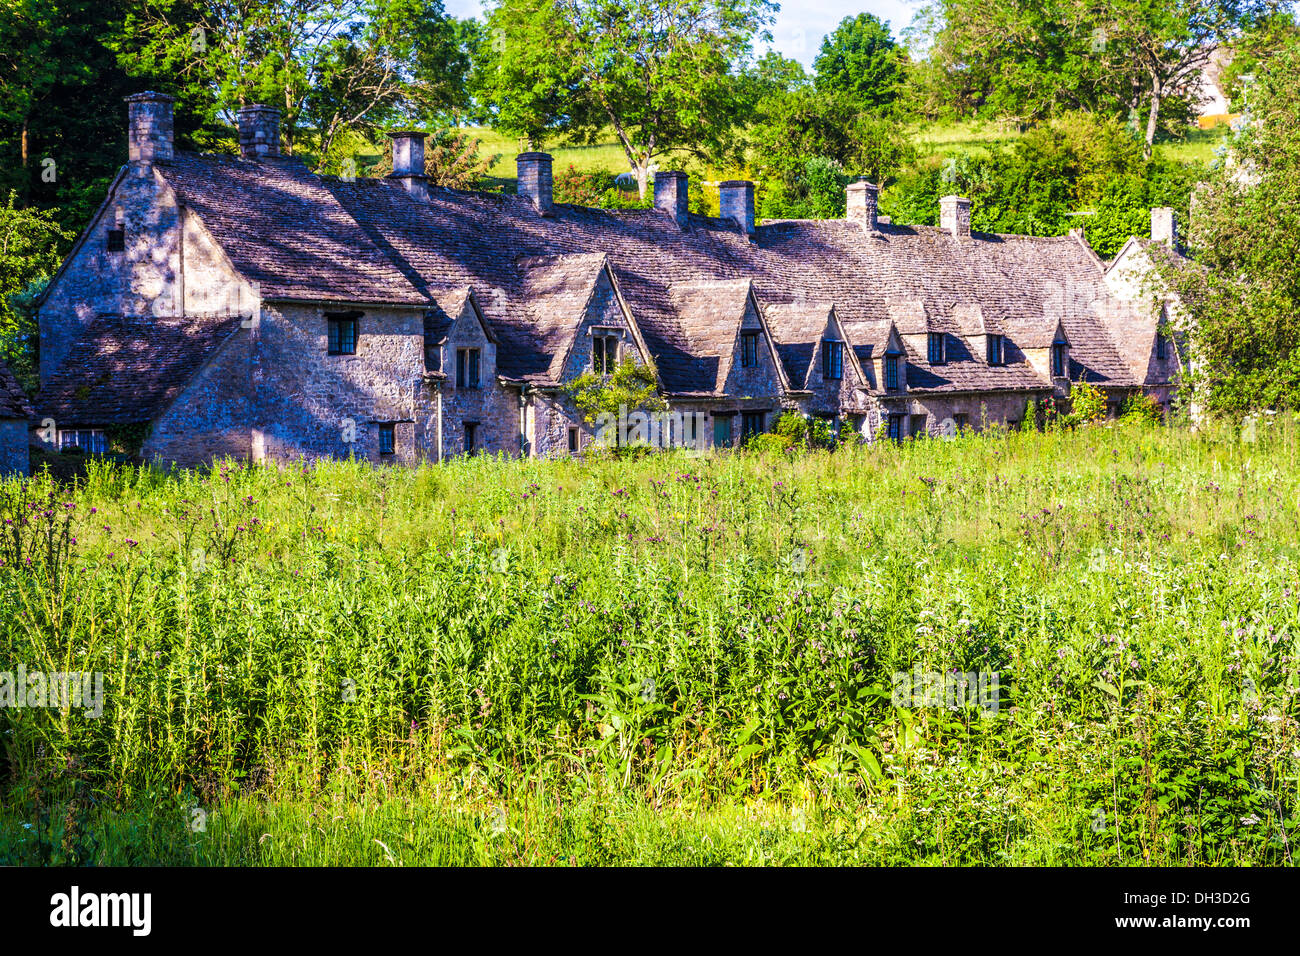 The famous weavers' cottages, Arlington Row, viewed across the Rack Isle, an ancient water meadow, in Bibury, Cotswolds - Stock Image